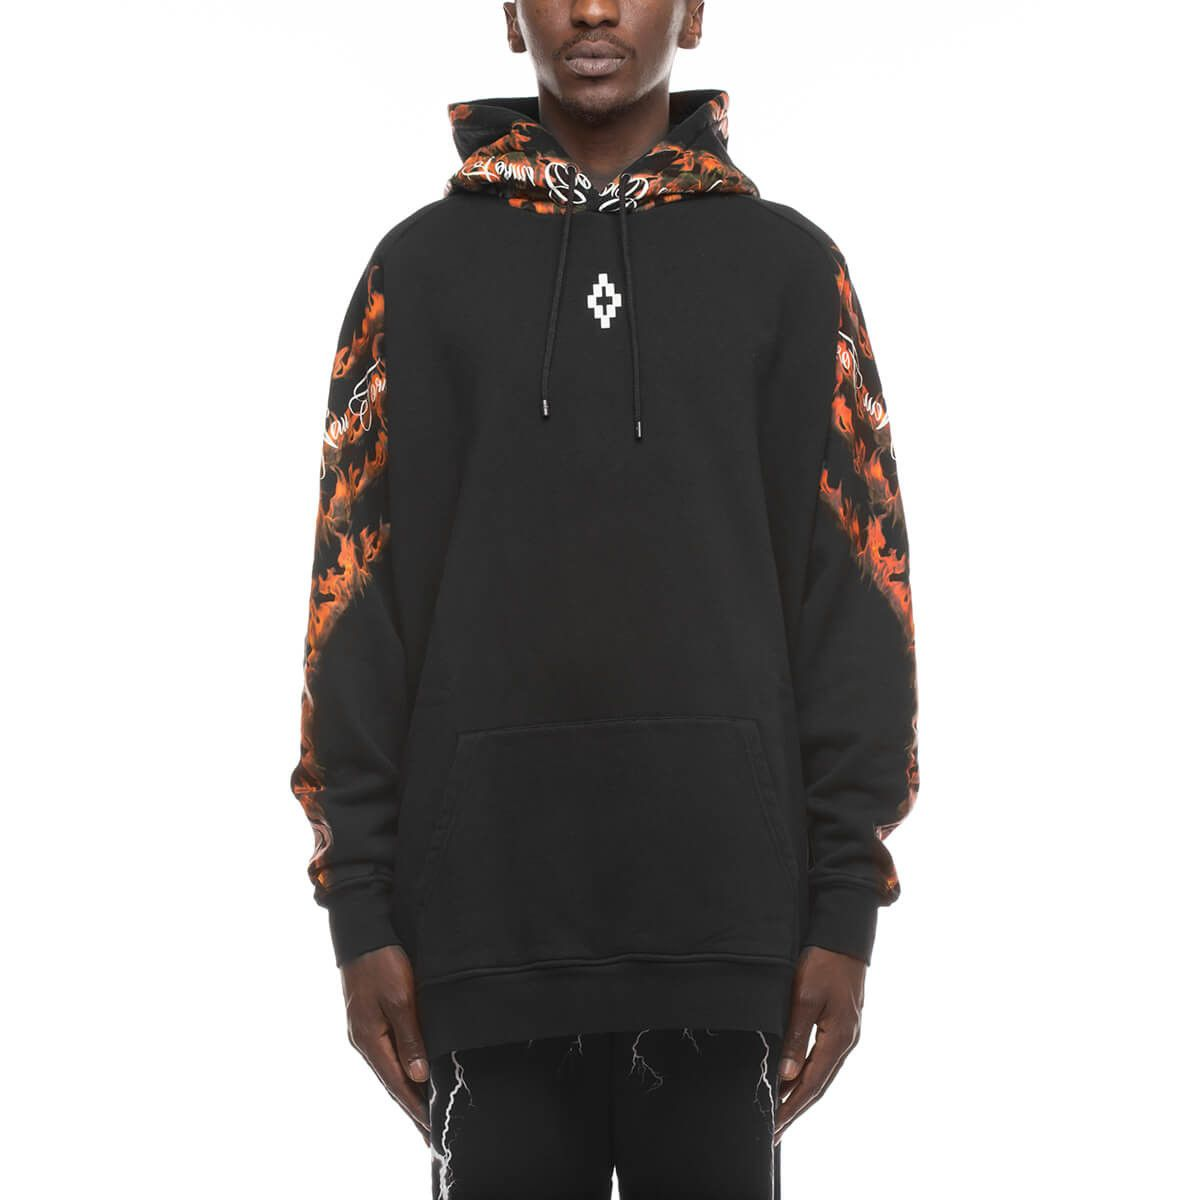 99770af32eafa Arshene hoodie from the F W2017-18 Marcelo Burlon County of Milan collection  in